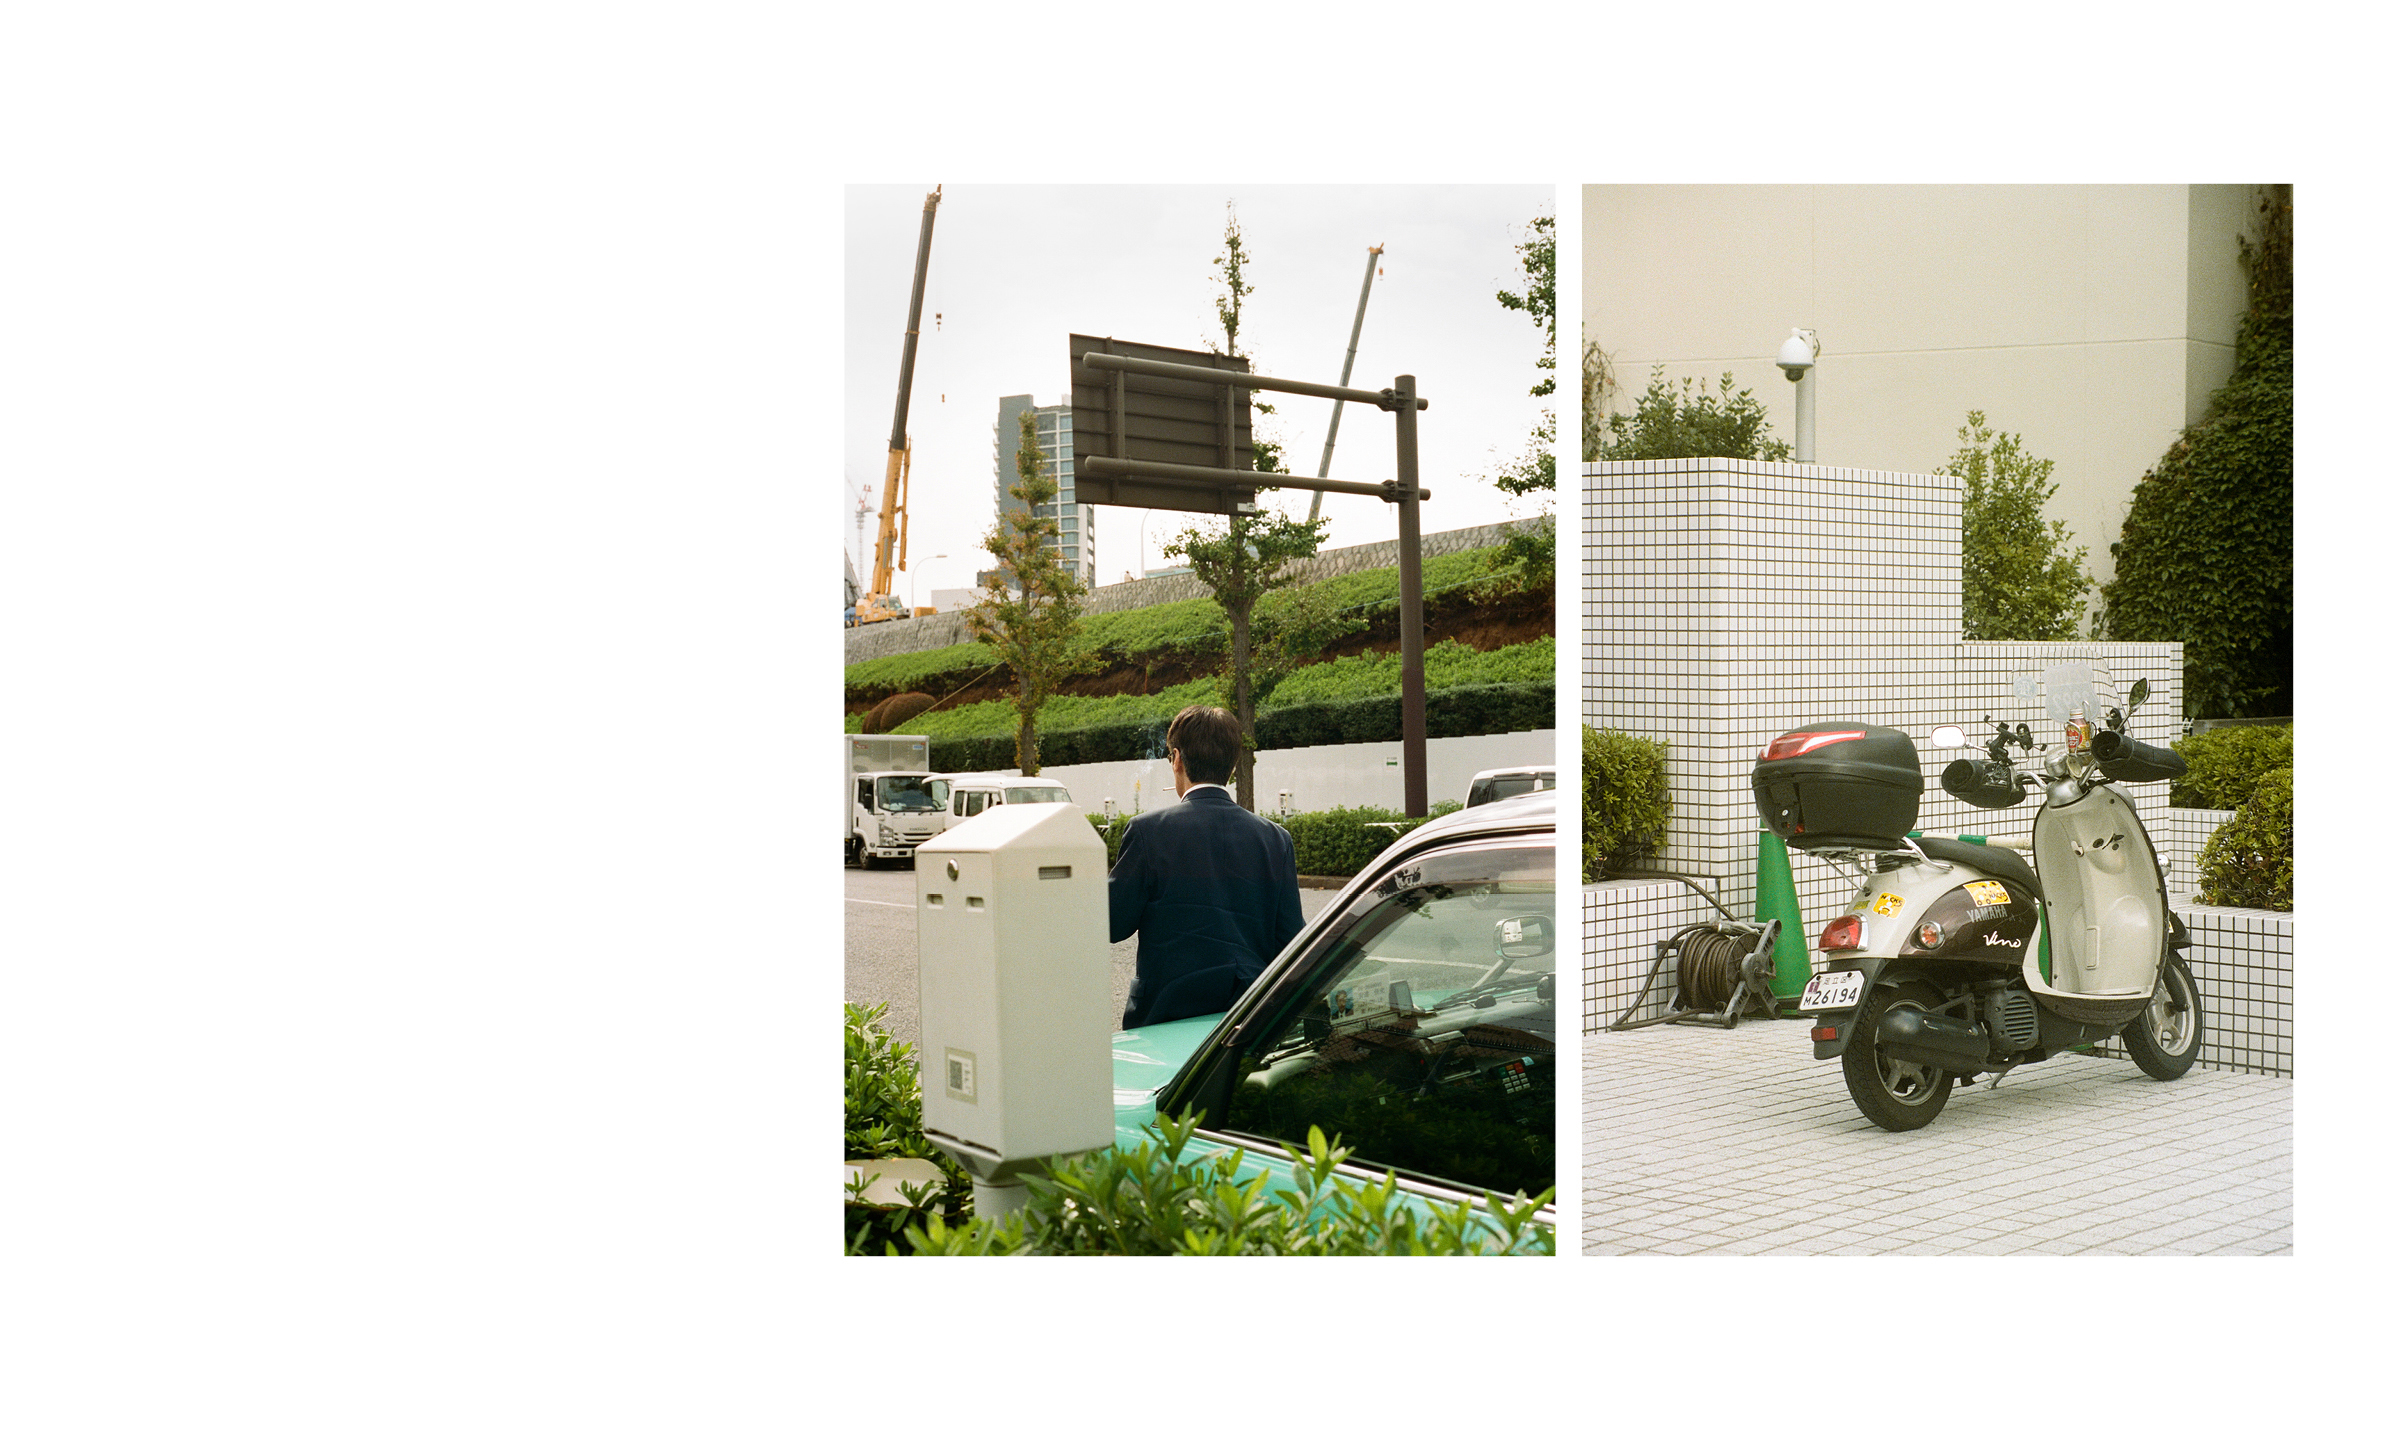 Tokyo_Photography_Case_Study_Layout7.jpg